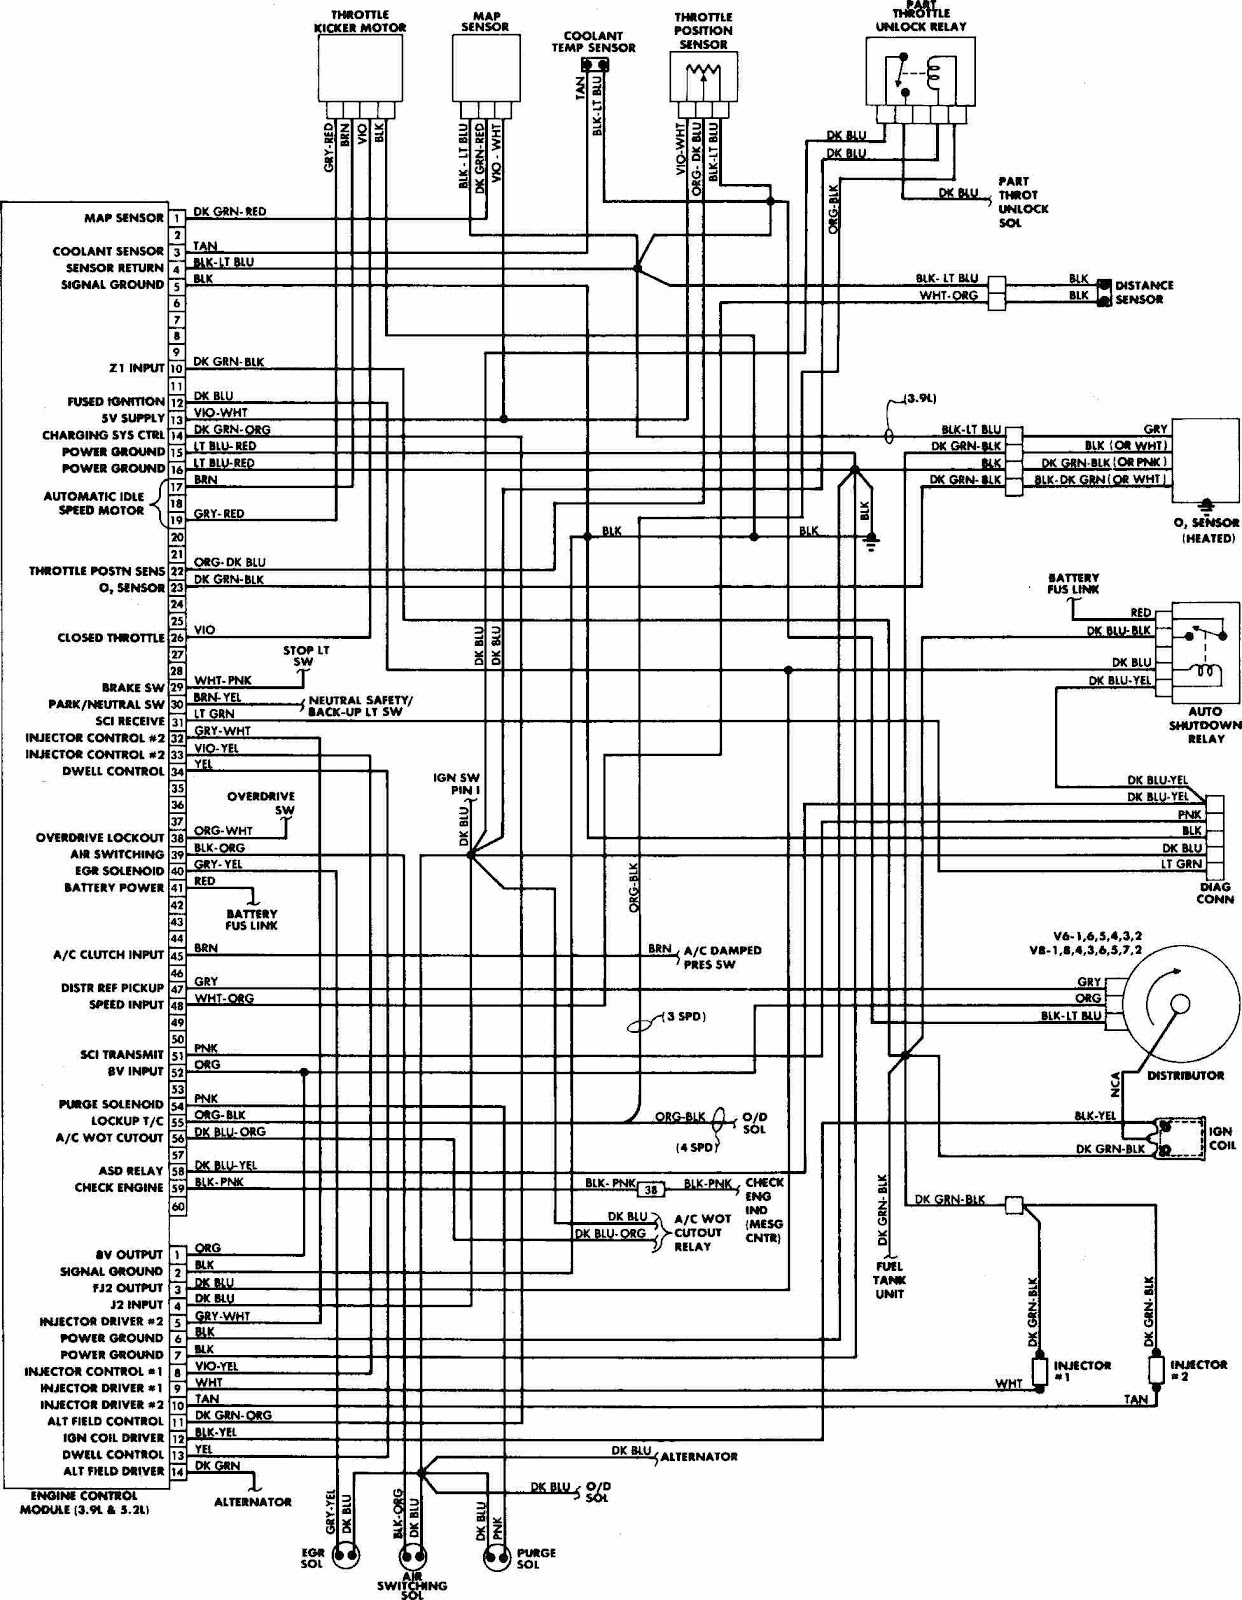 1973 dodge truck 318 engine schematic  1973  free engine image for user manual download